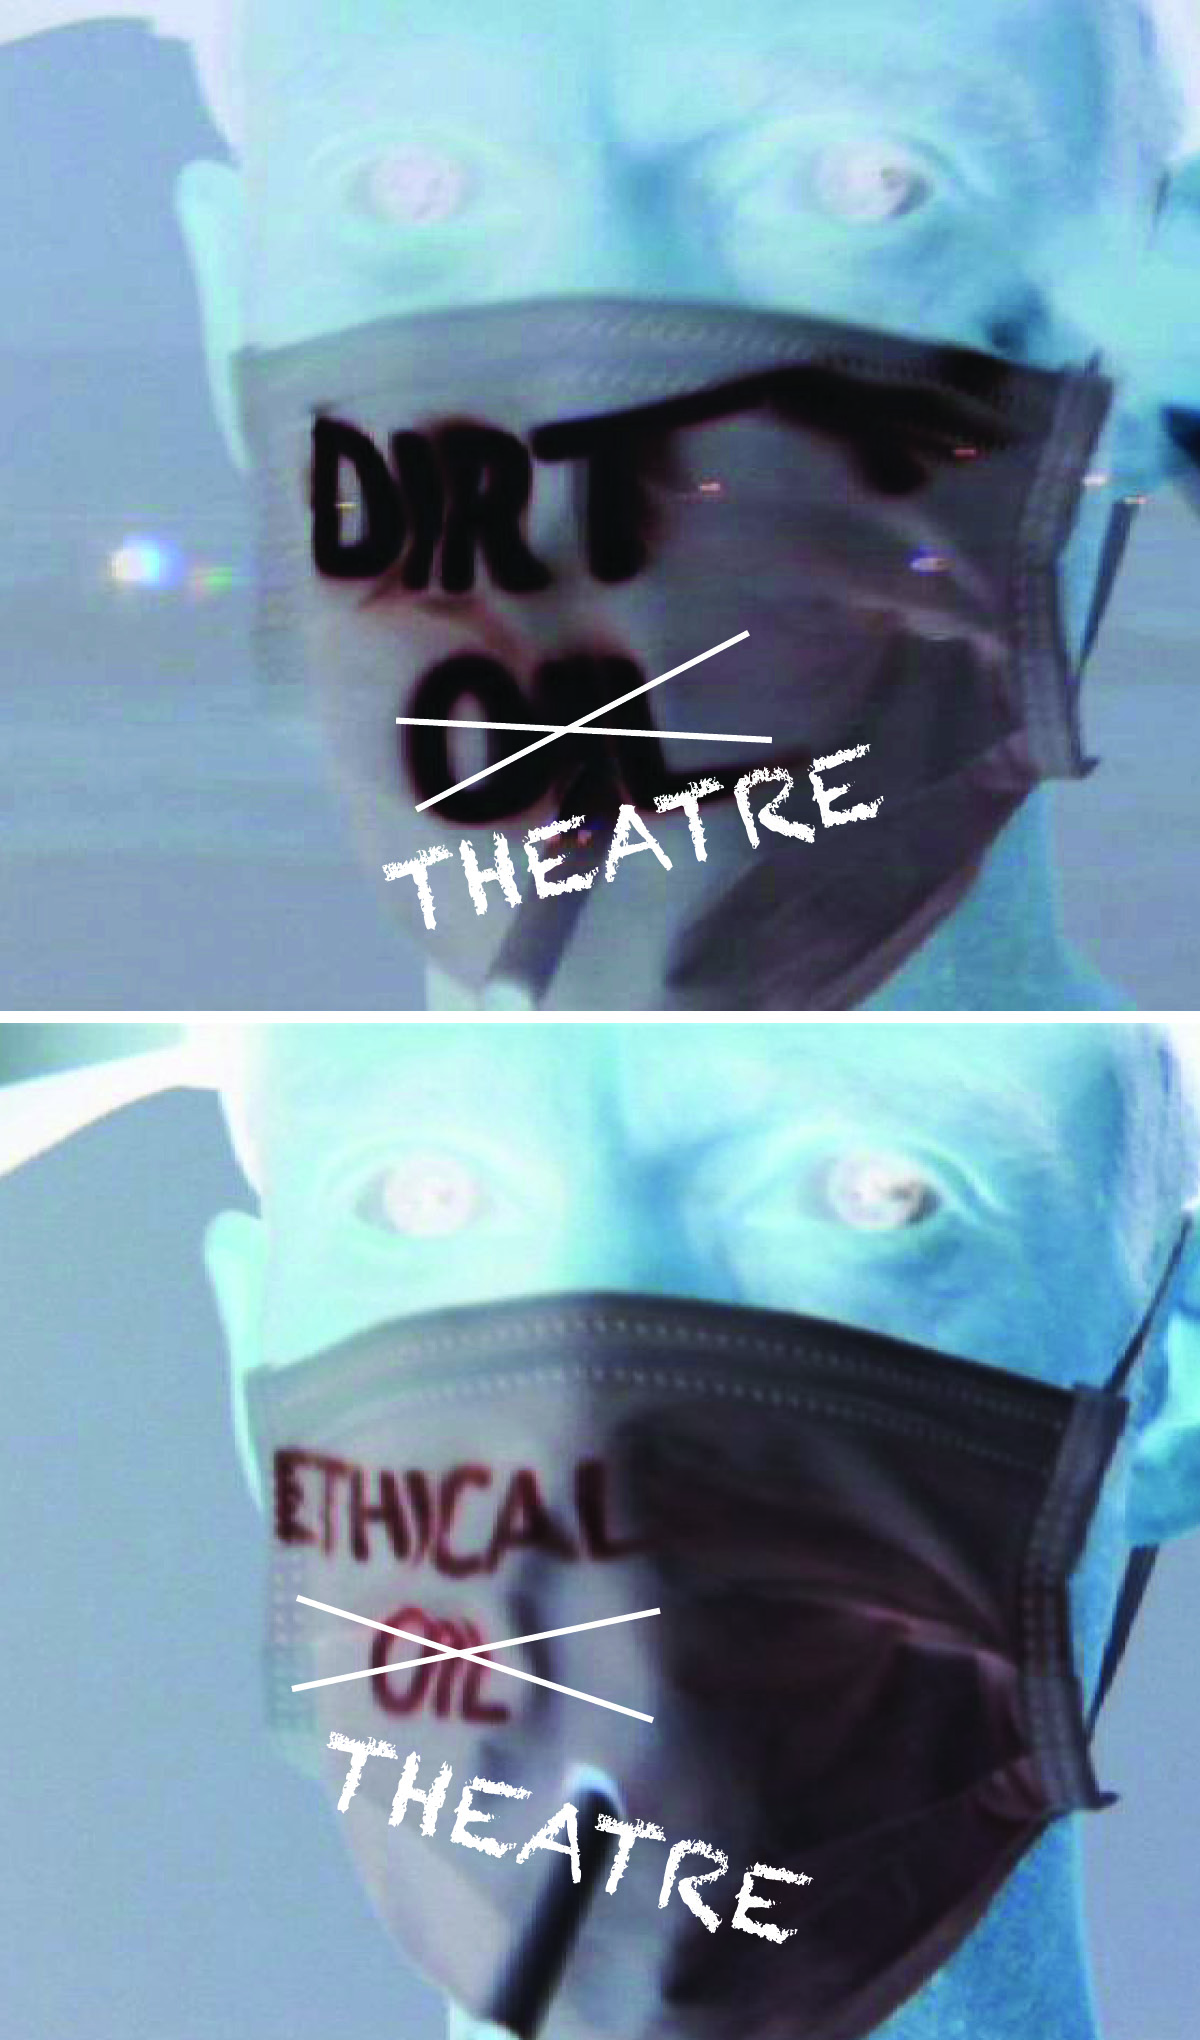 Dirty or Ethical Theatre